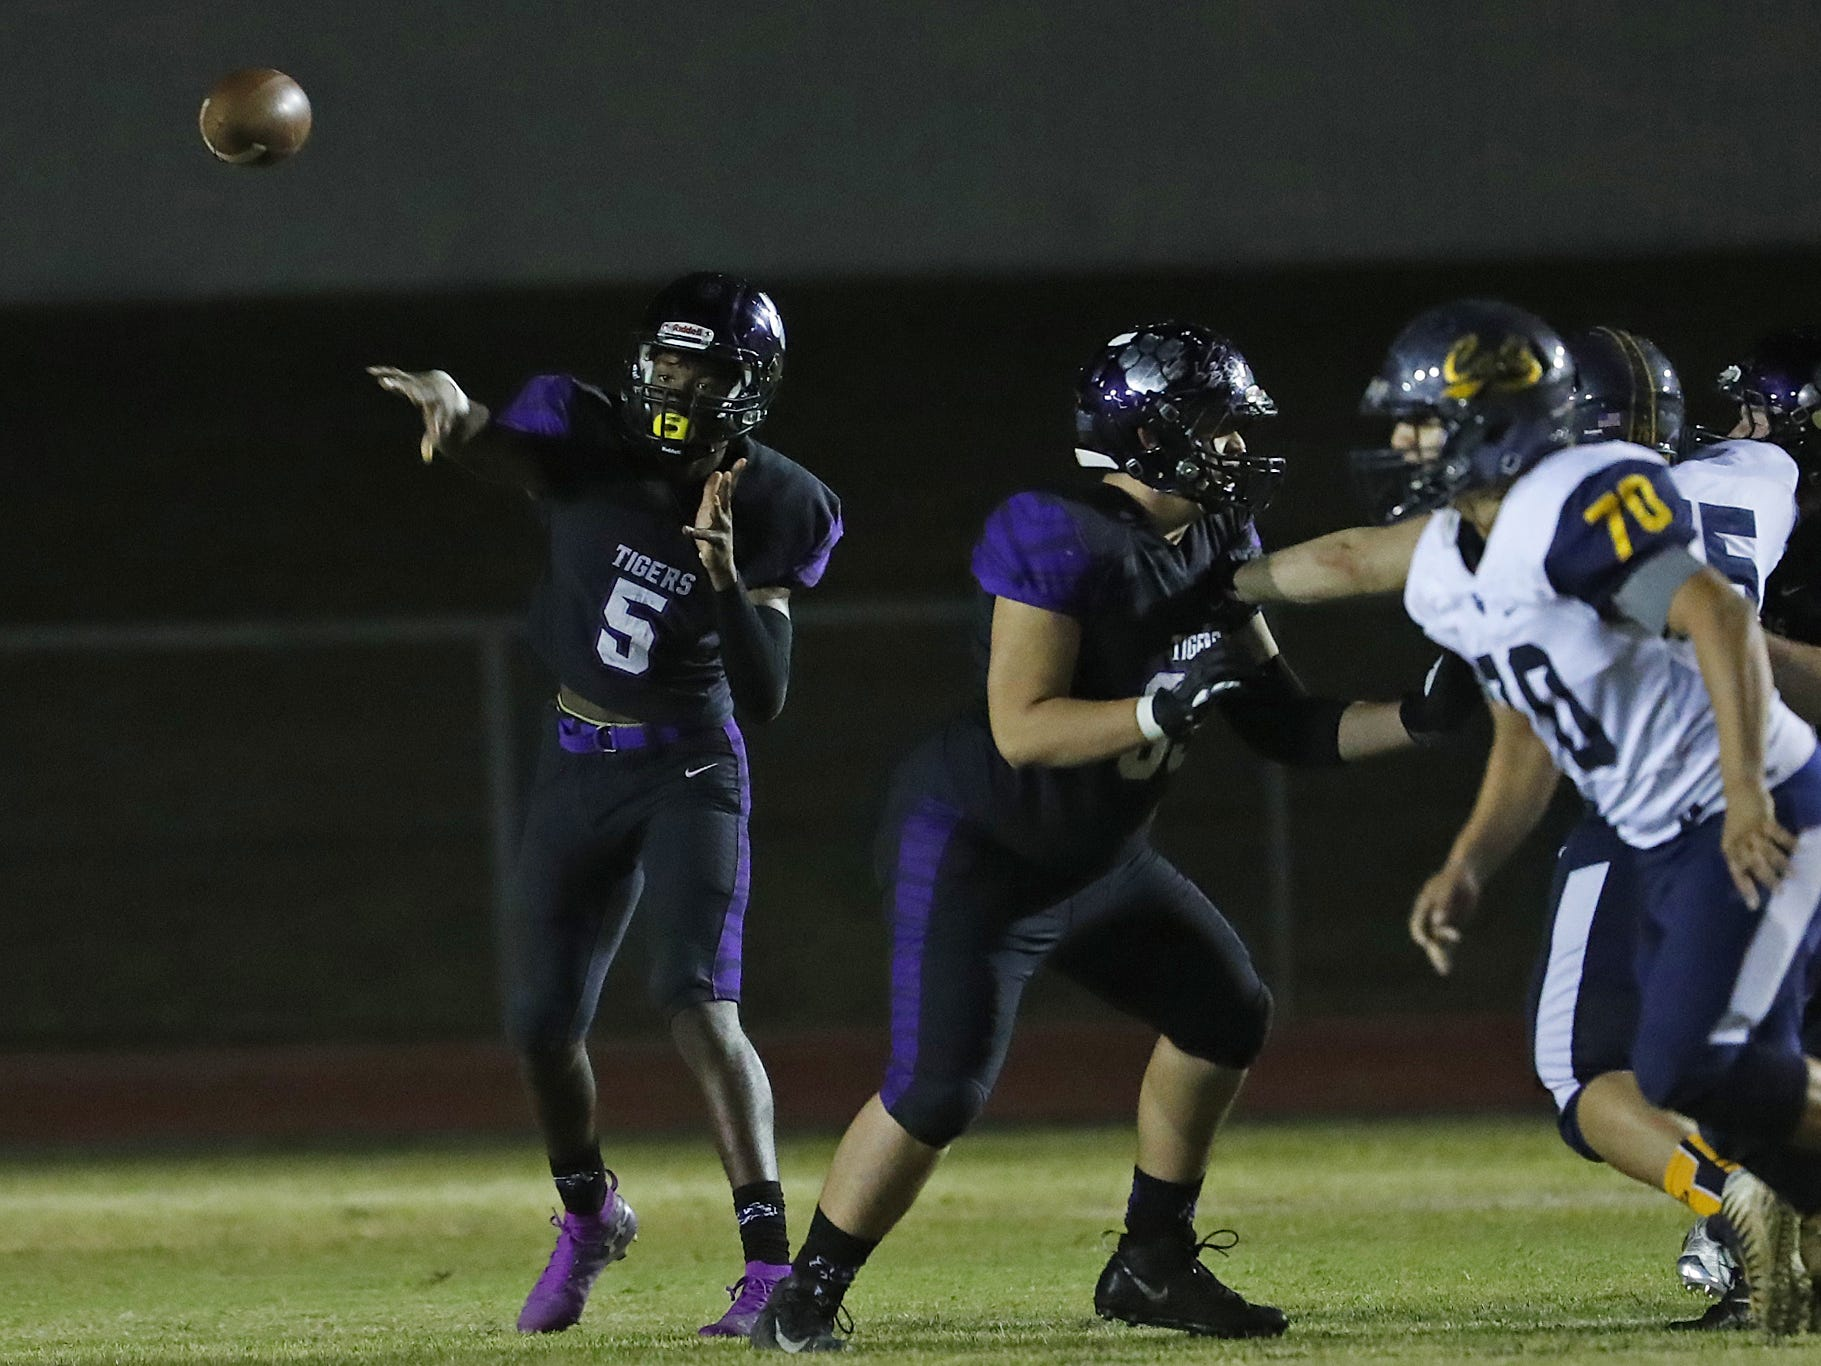 Millennium's Zareq Brown (5) throws a pass against Flowing Wells during the first round of the AIA State Football Playoffs at Millennium High School in Goodyear, Ariz. on Nov. 2, 2018.